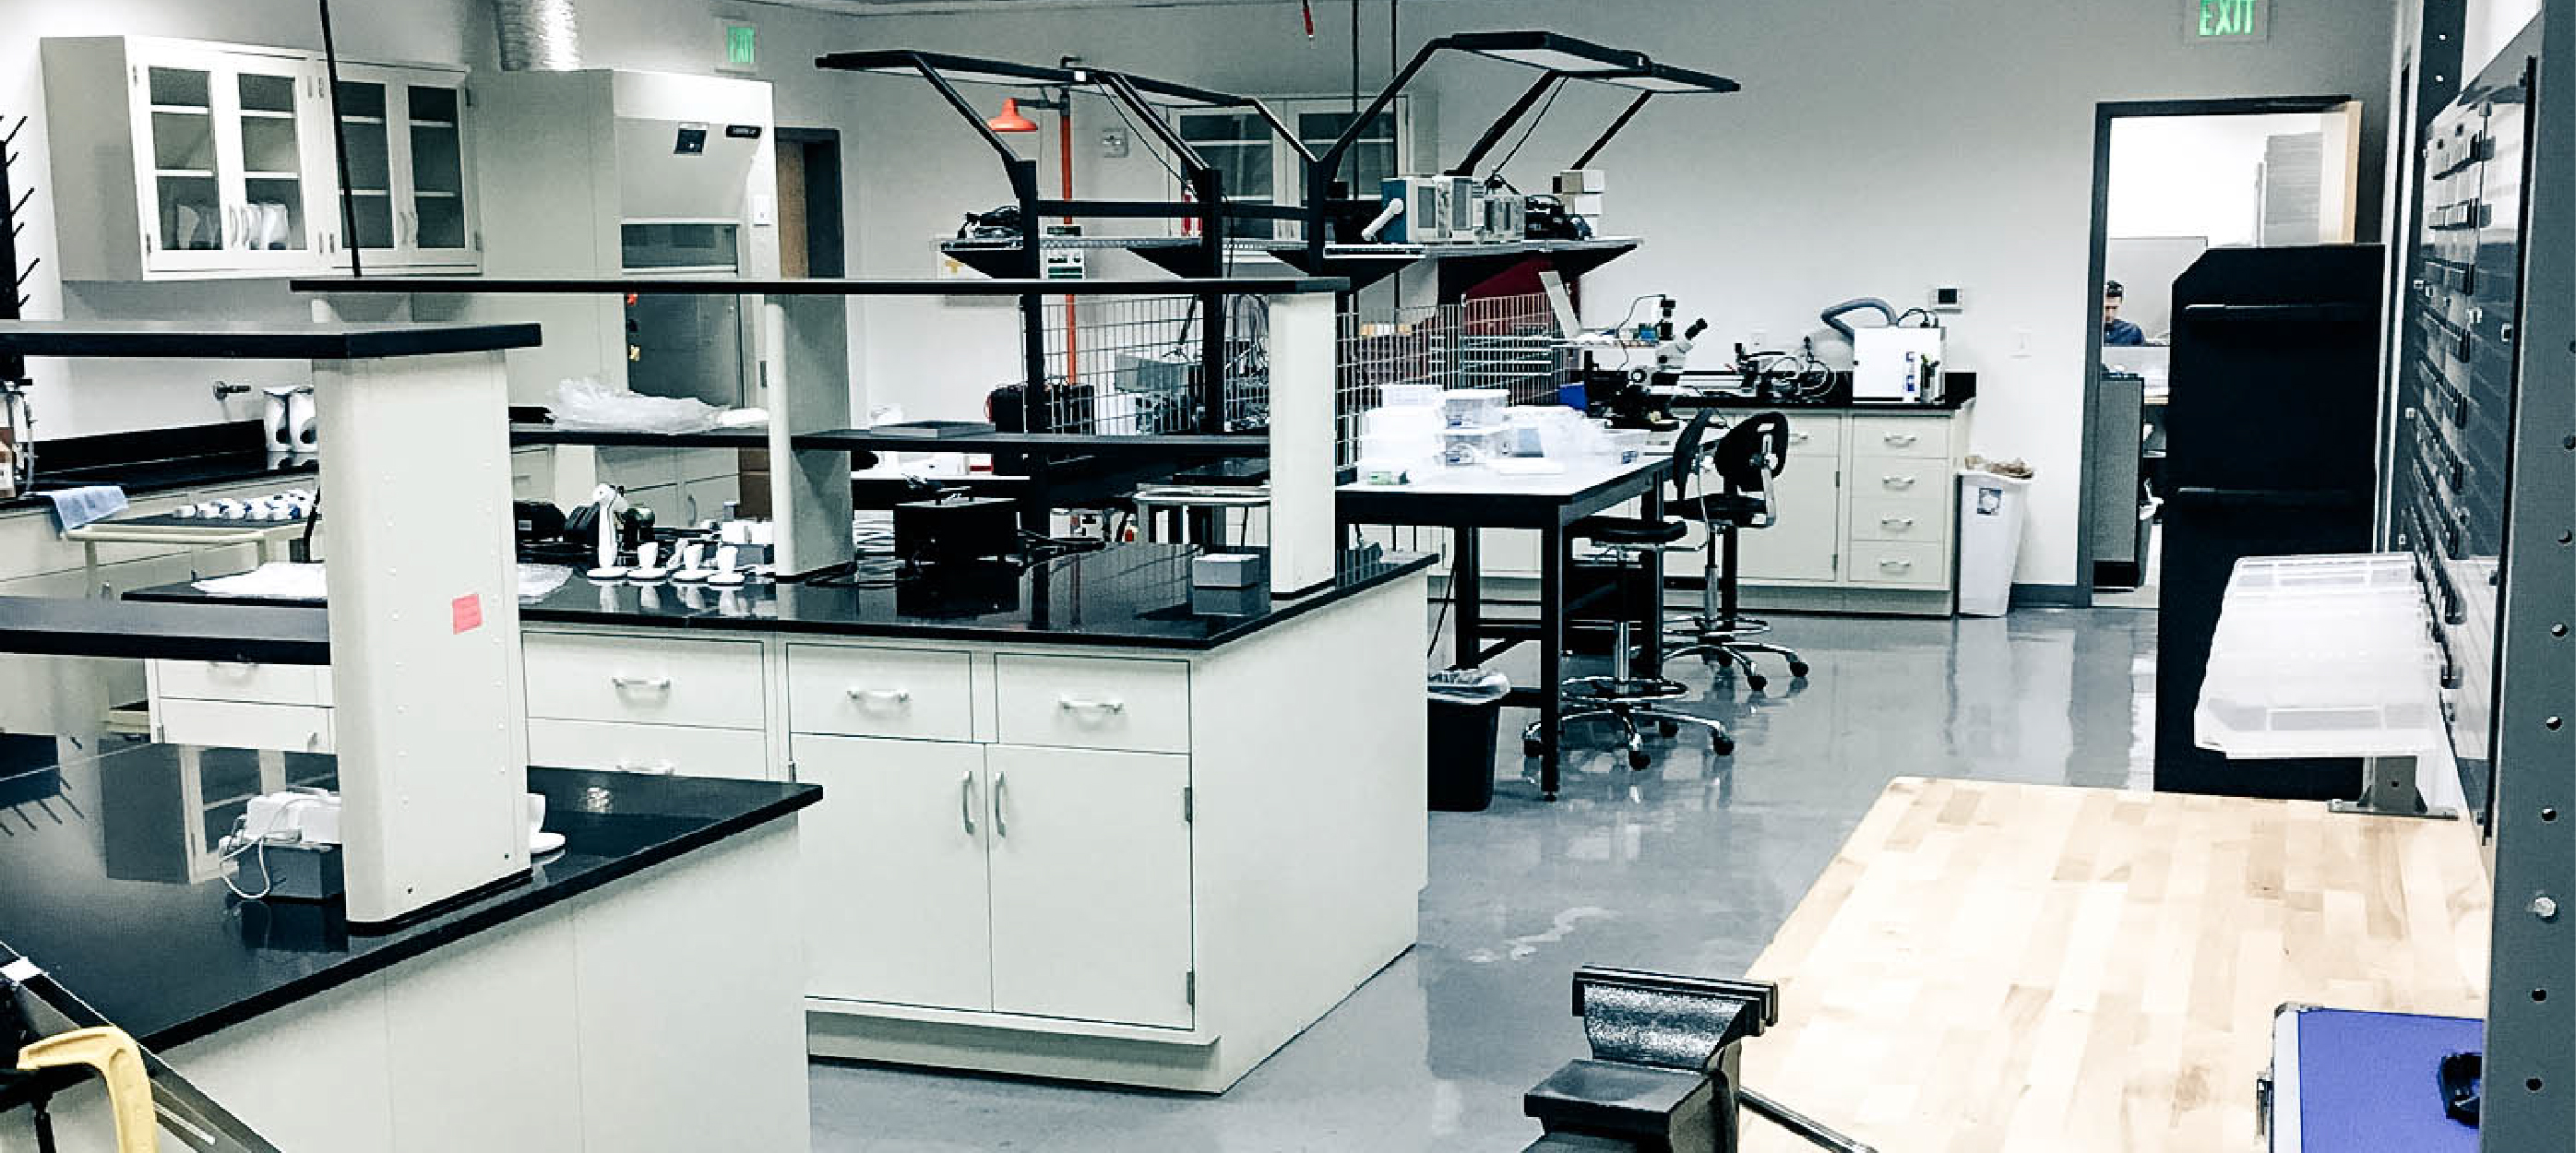 Nu Skin engineer work stations in the engineer lab